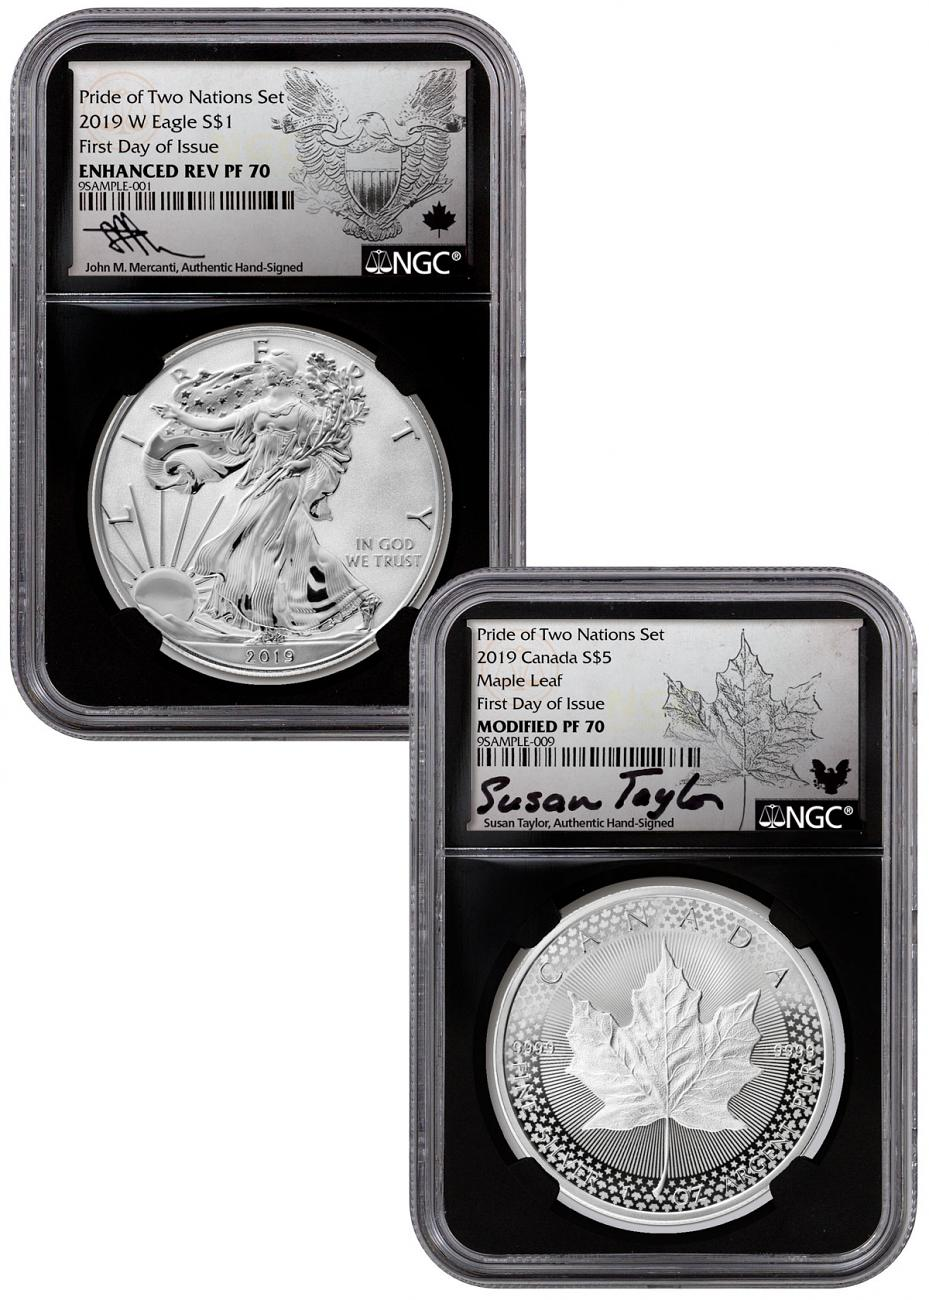 2019 W Enhanced Reverse Proof Silver Eagle NGC PF 70 Pride of Two Nations  FDI